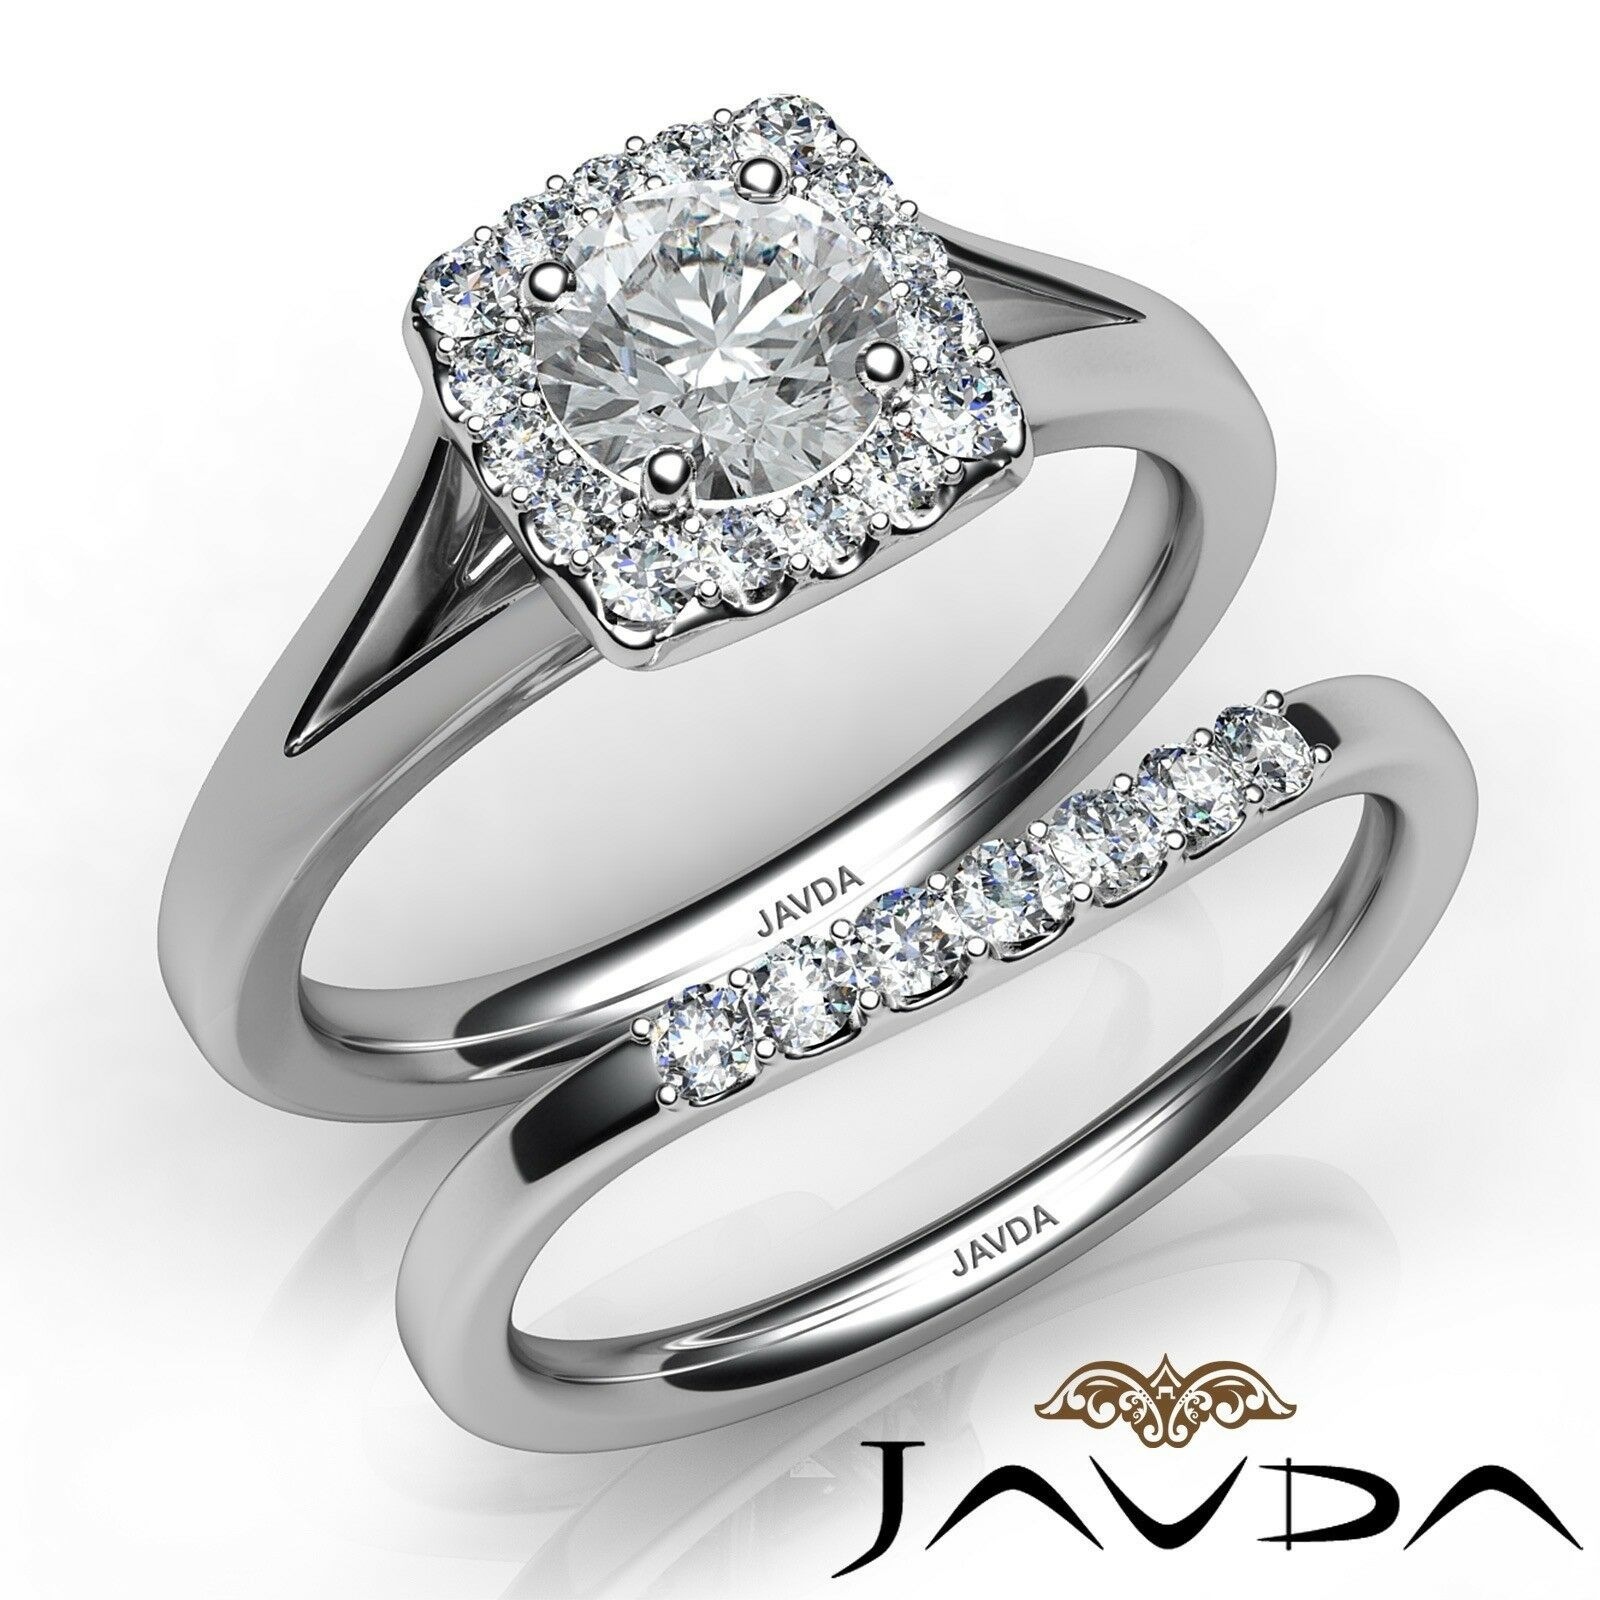 1.12ctw Halo Side Stone Bridal Set Round Diamond Engagement Ring GIA F-VVS1 Gold